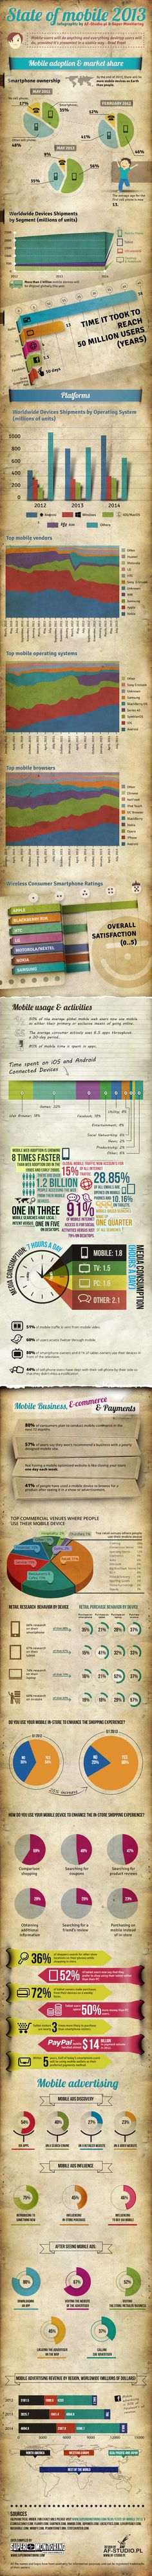 #Infographic on State of #Mobile phone. #2013 #Technology #Android #iOS